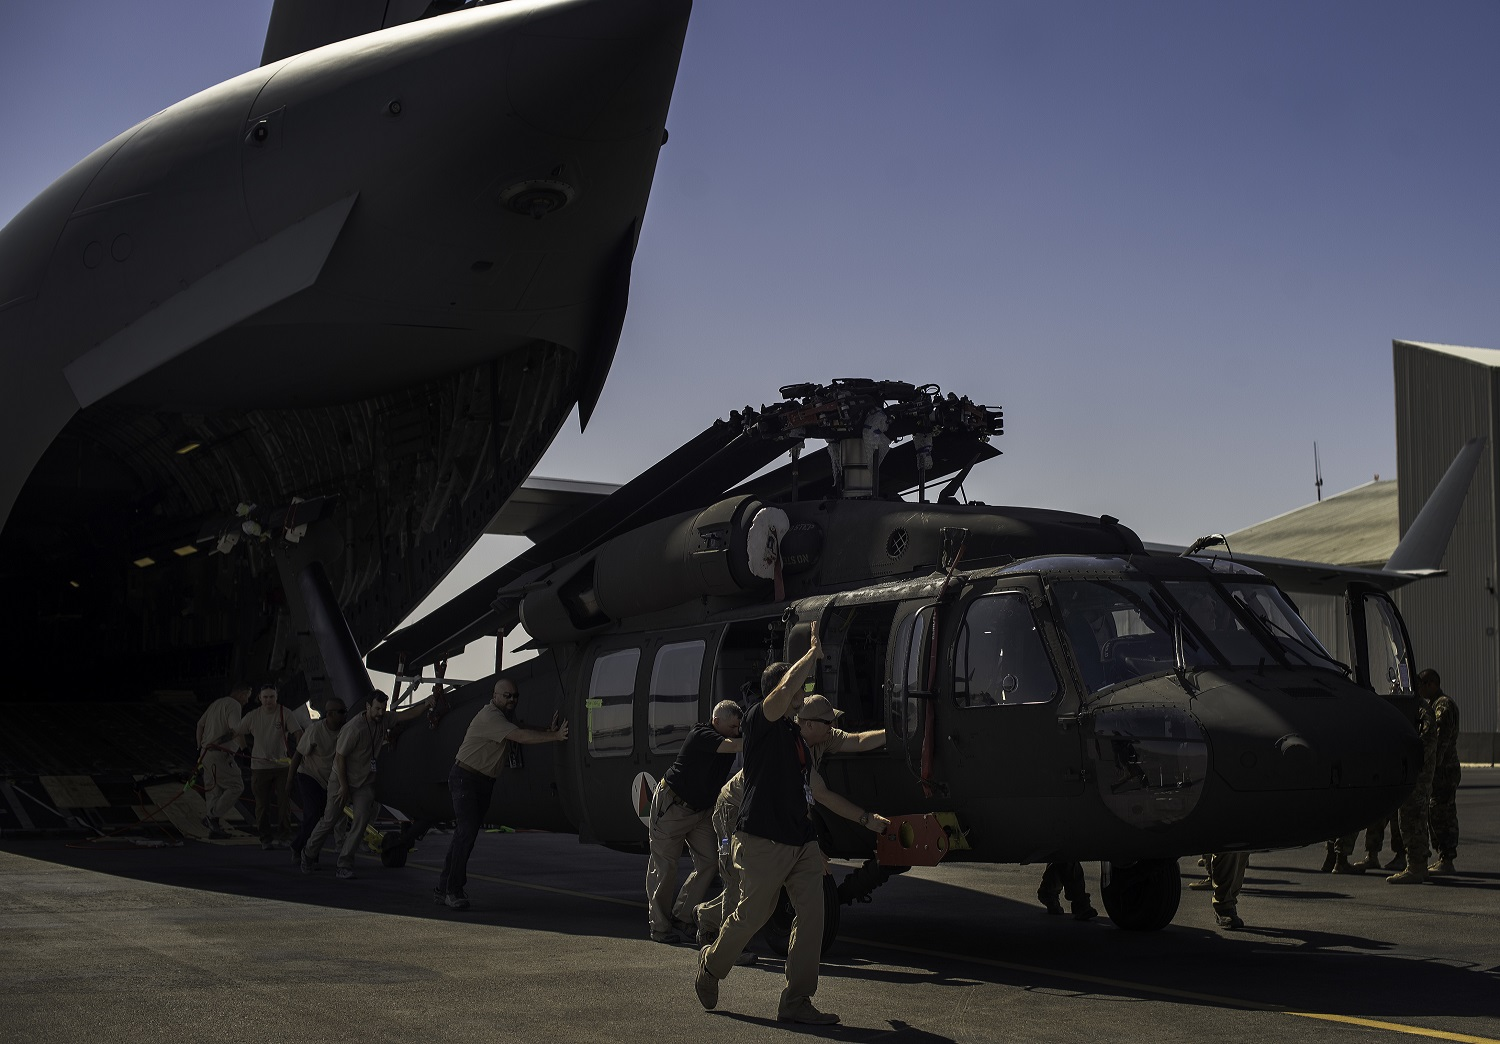 Inside the US military's plans to double the Afghan Air Force's aircraft inventory